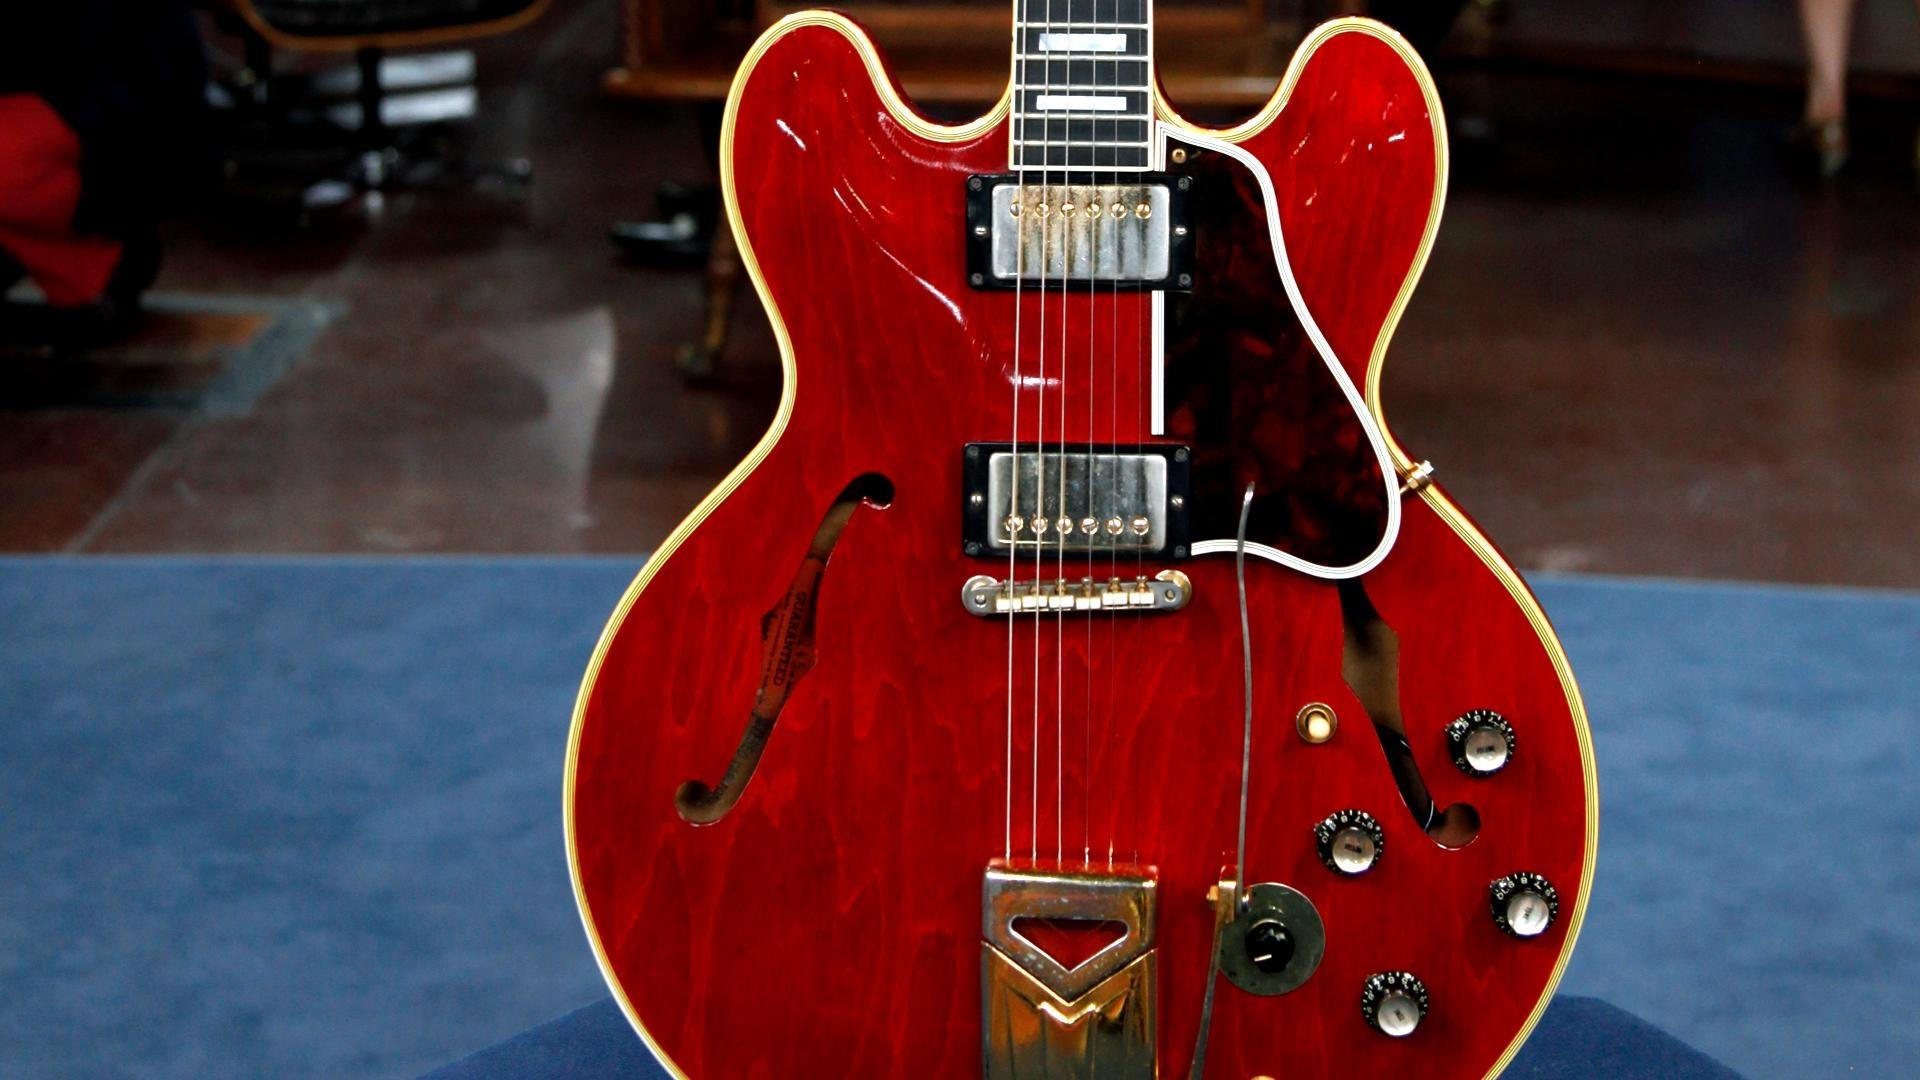 antiques roadshow appraisal 1963 gibson es 355 stereo electric guitar twin cities pbs. Black Bedroom Furniture Sets. Home Design Ideas